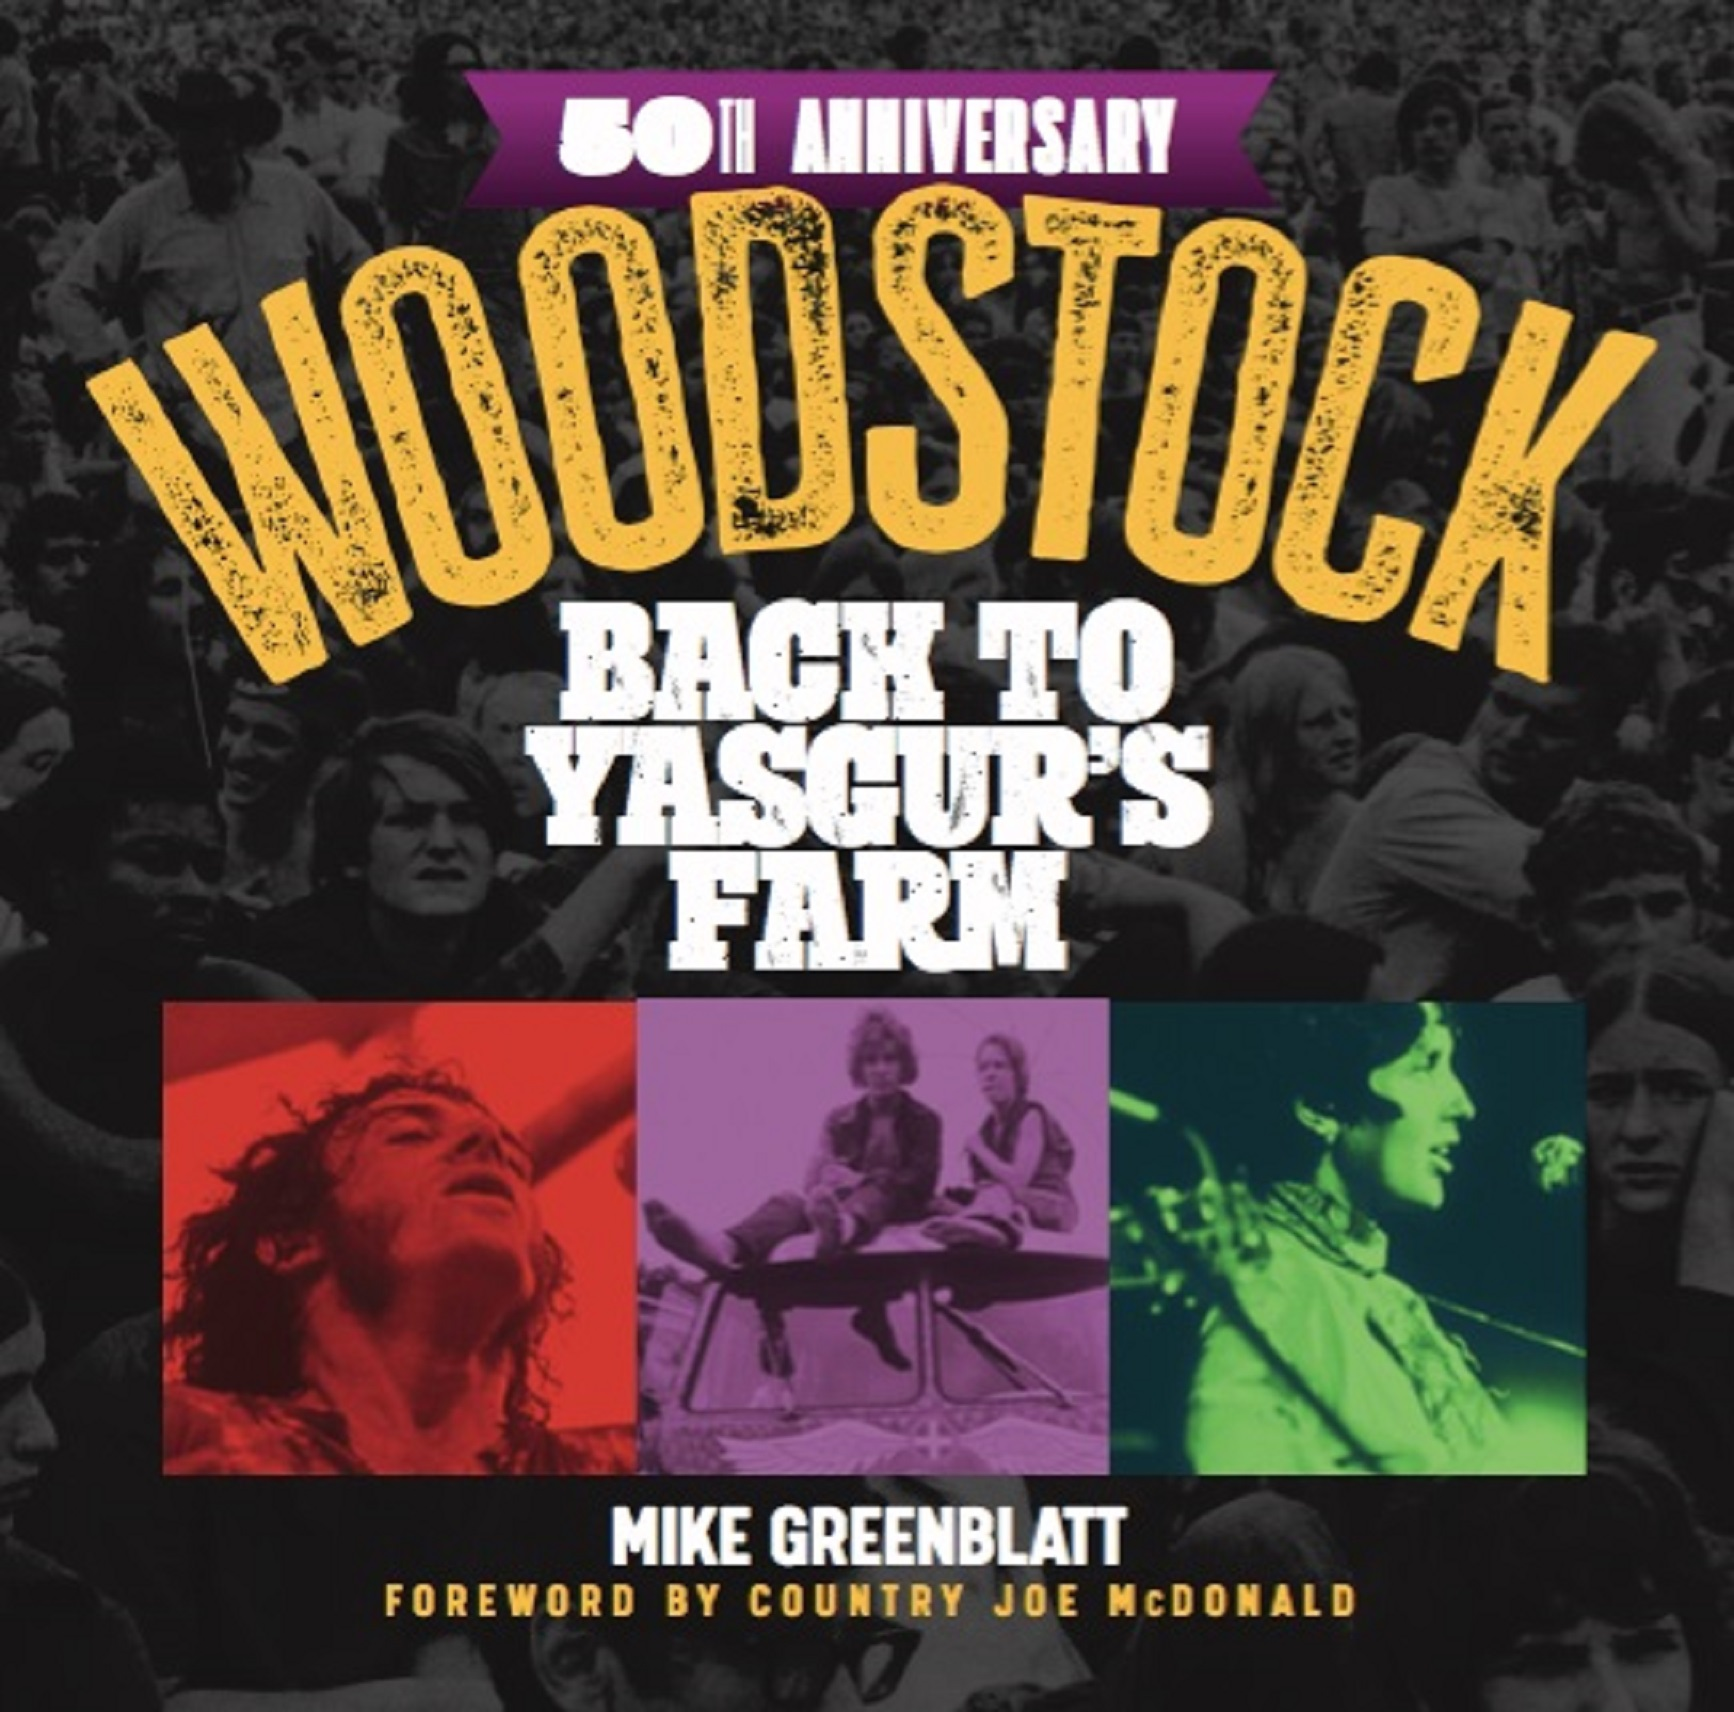 New Book on Woodstock's 50th Anniversary